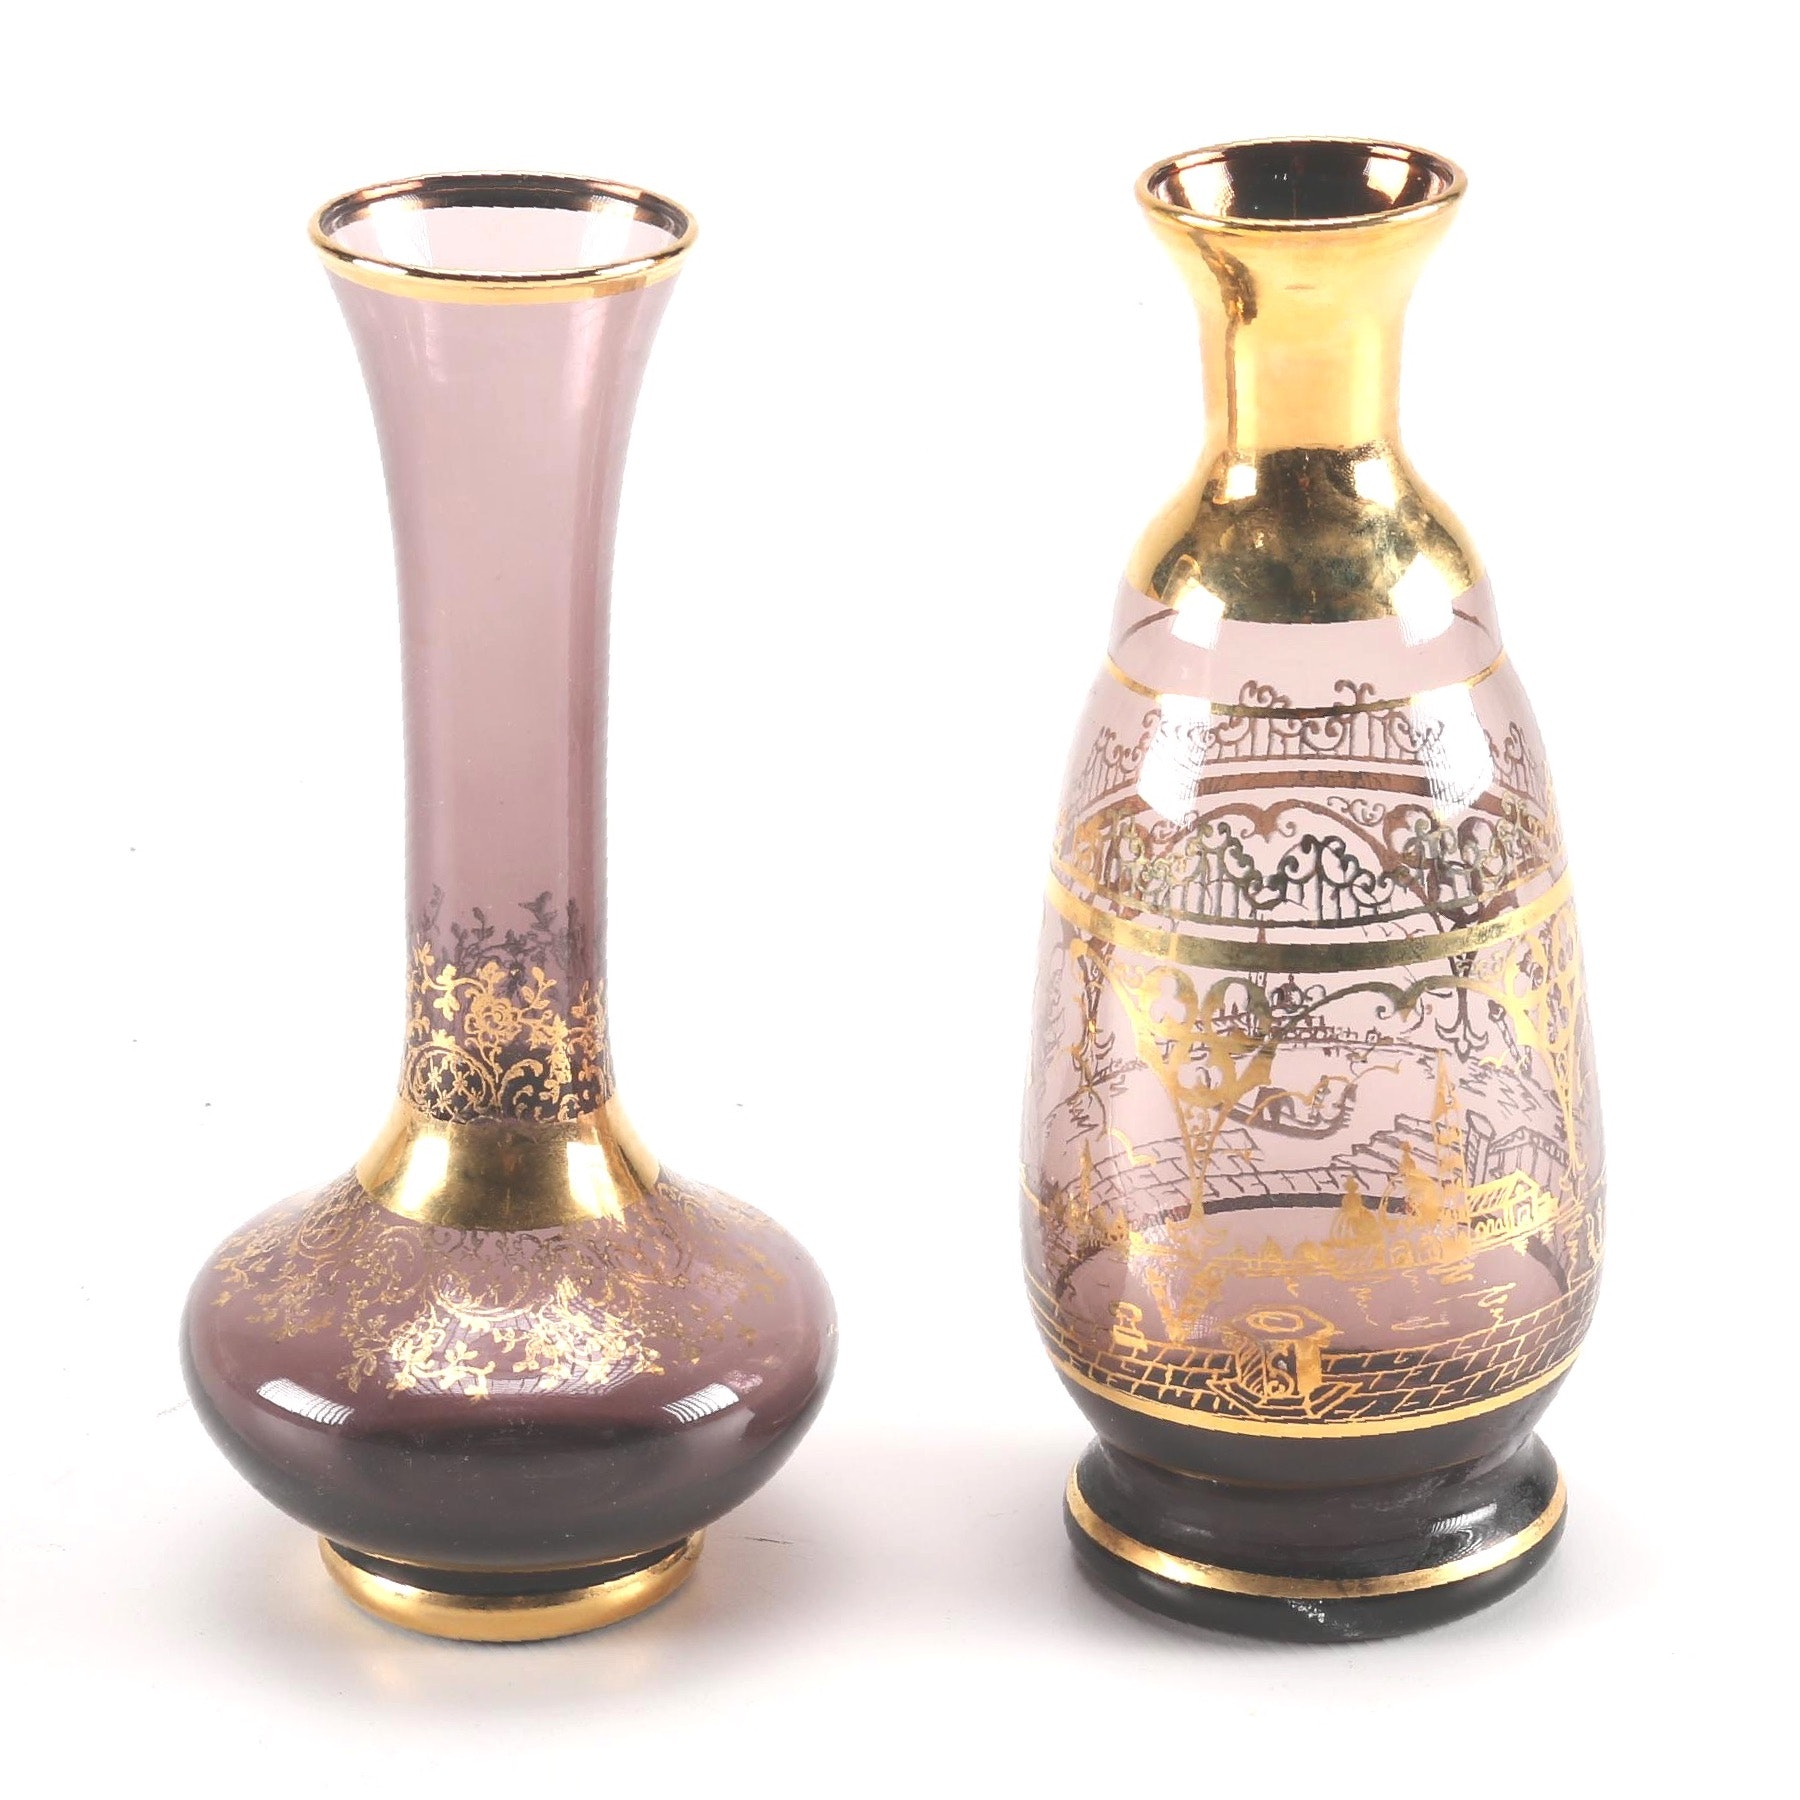 Venetian Art Glass Vases with Gold Painted Accents